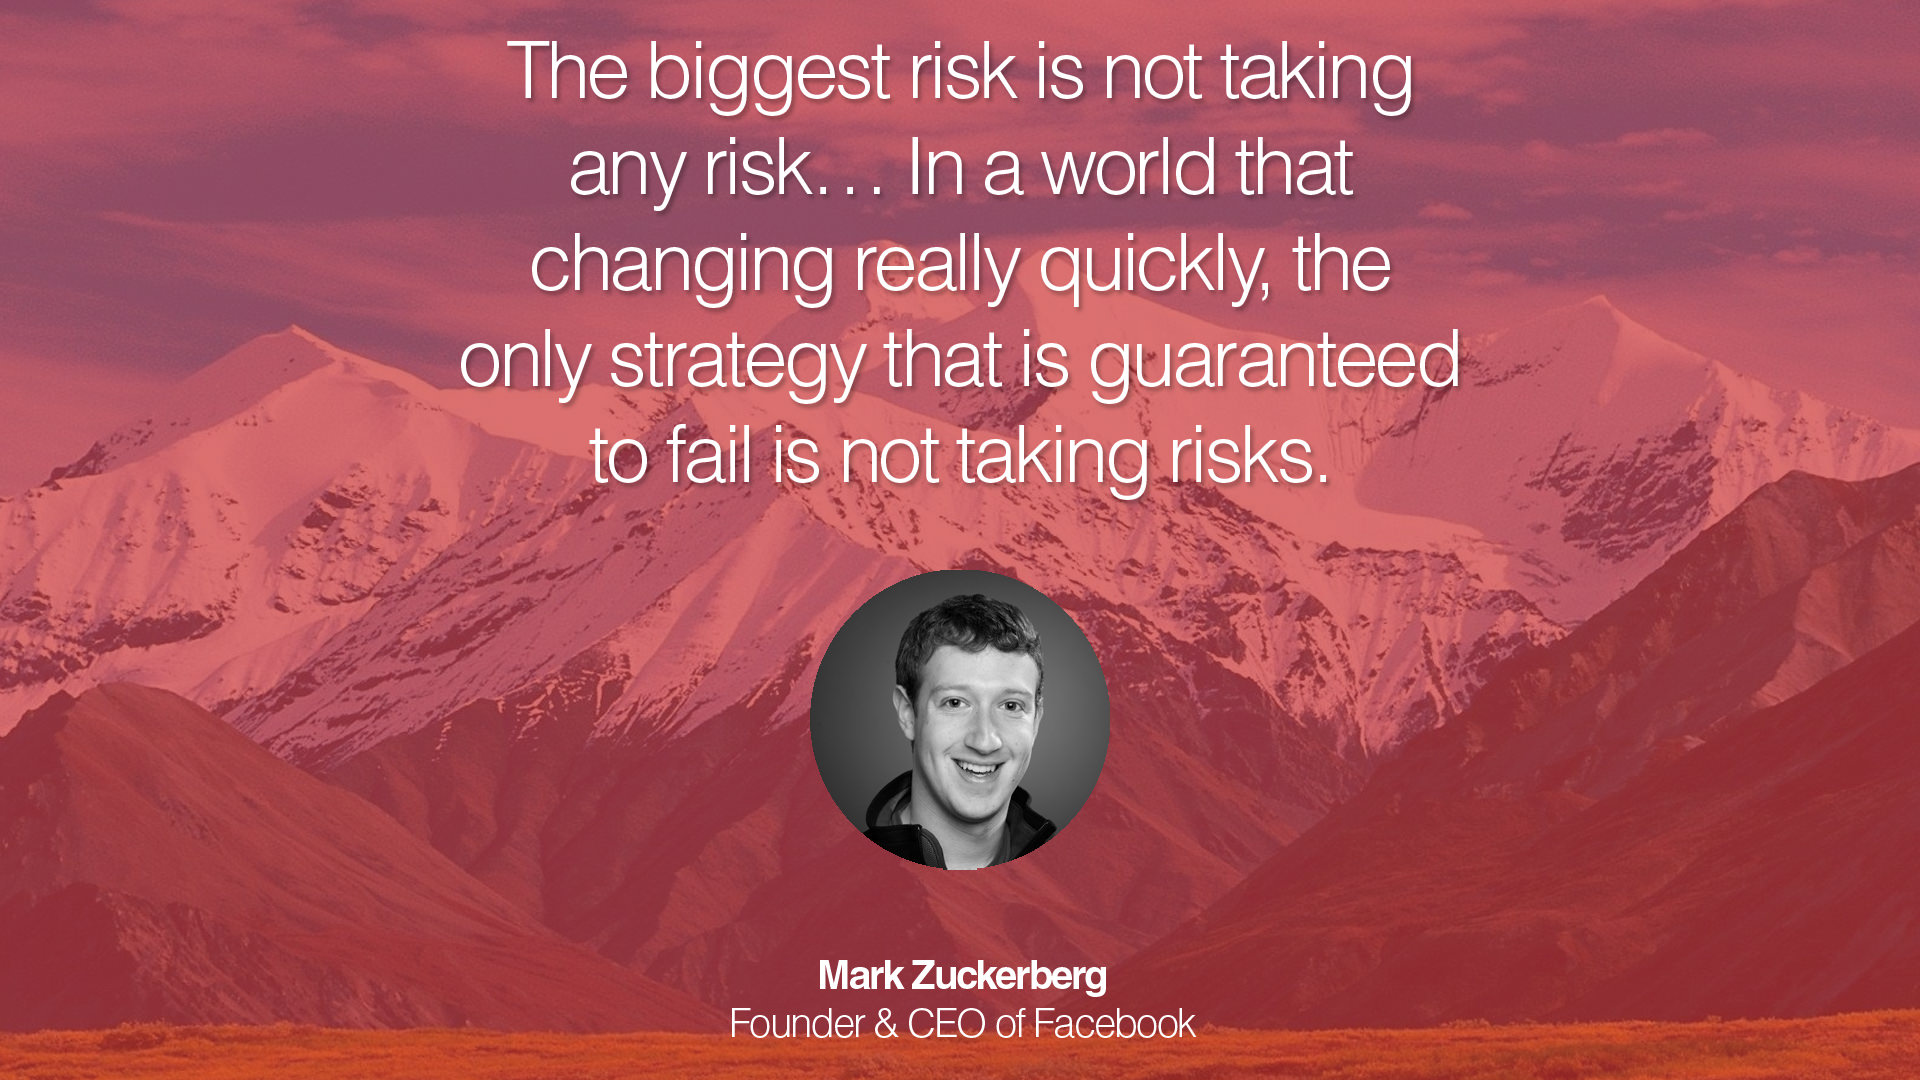 21 Inspirational Entrepreneur Quotes By Famous Billionaires And